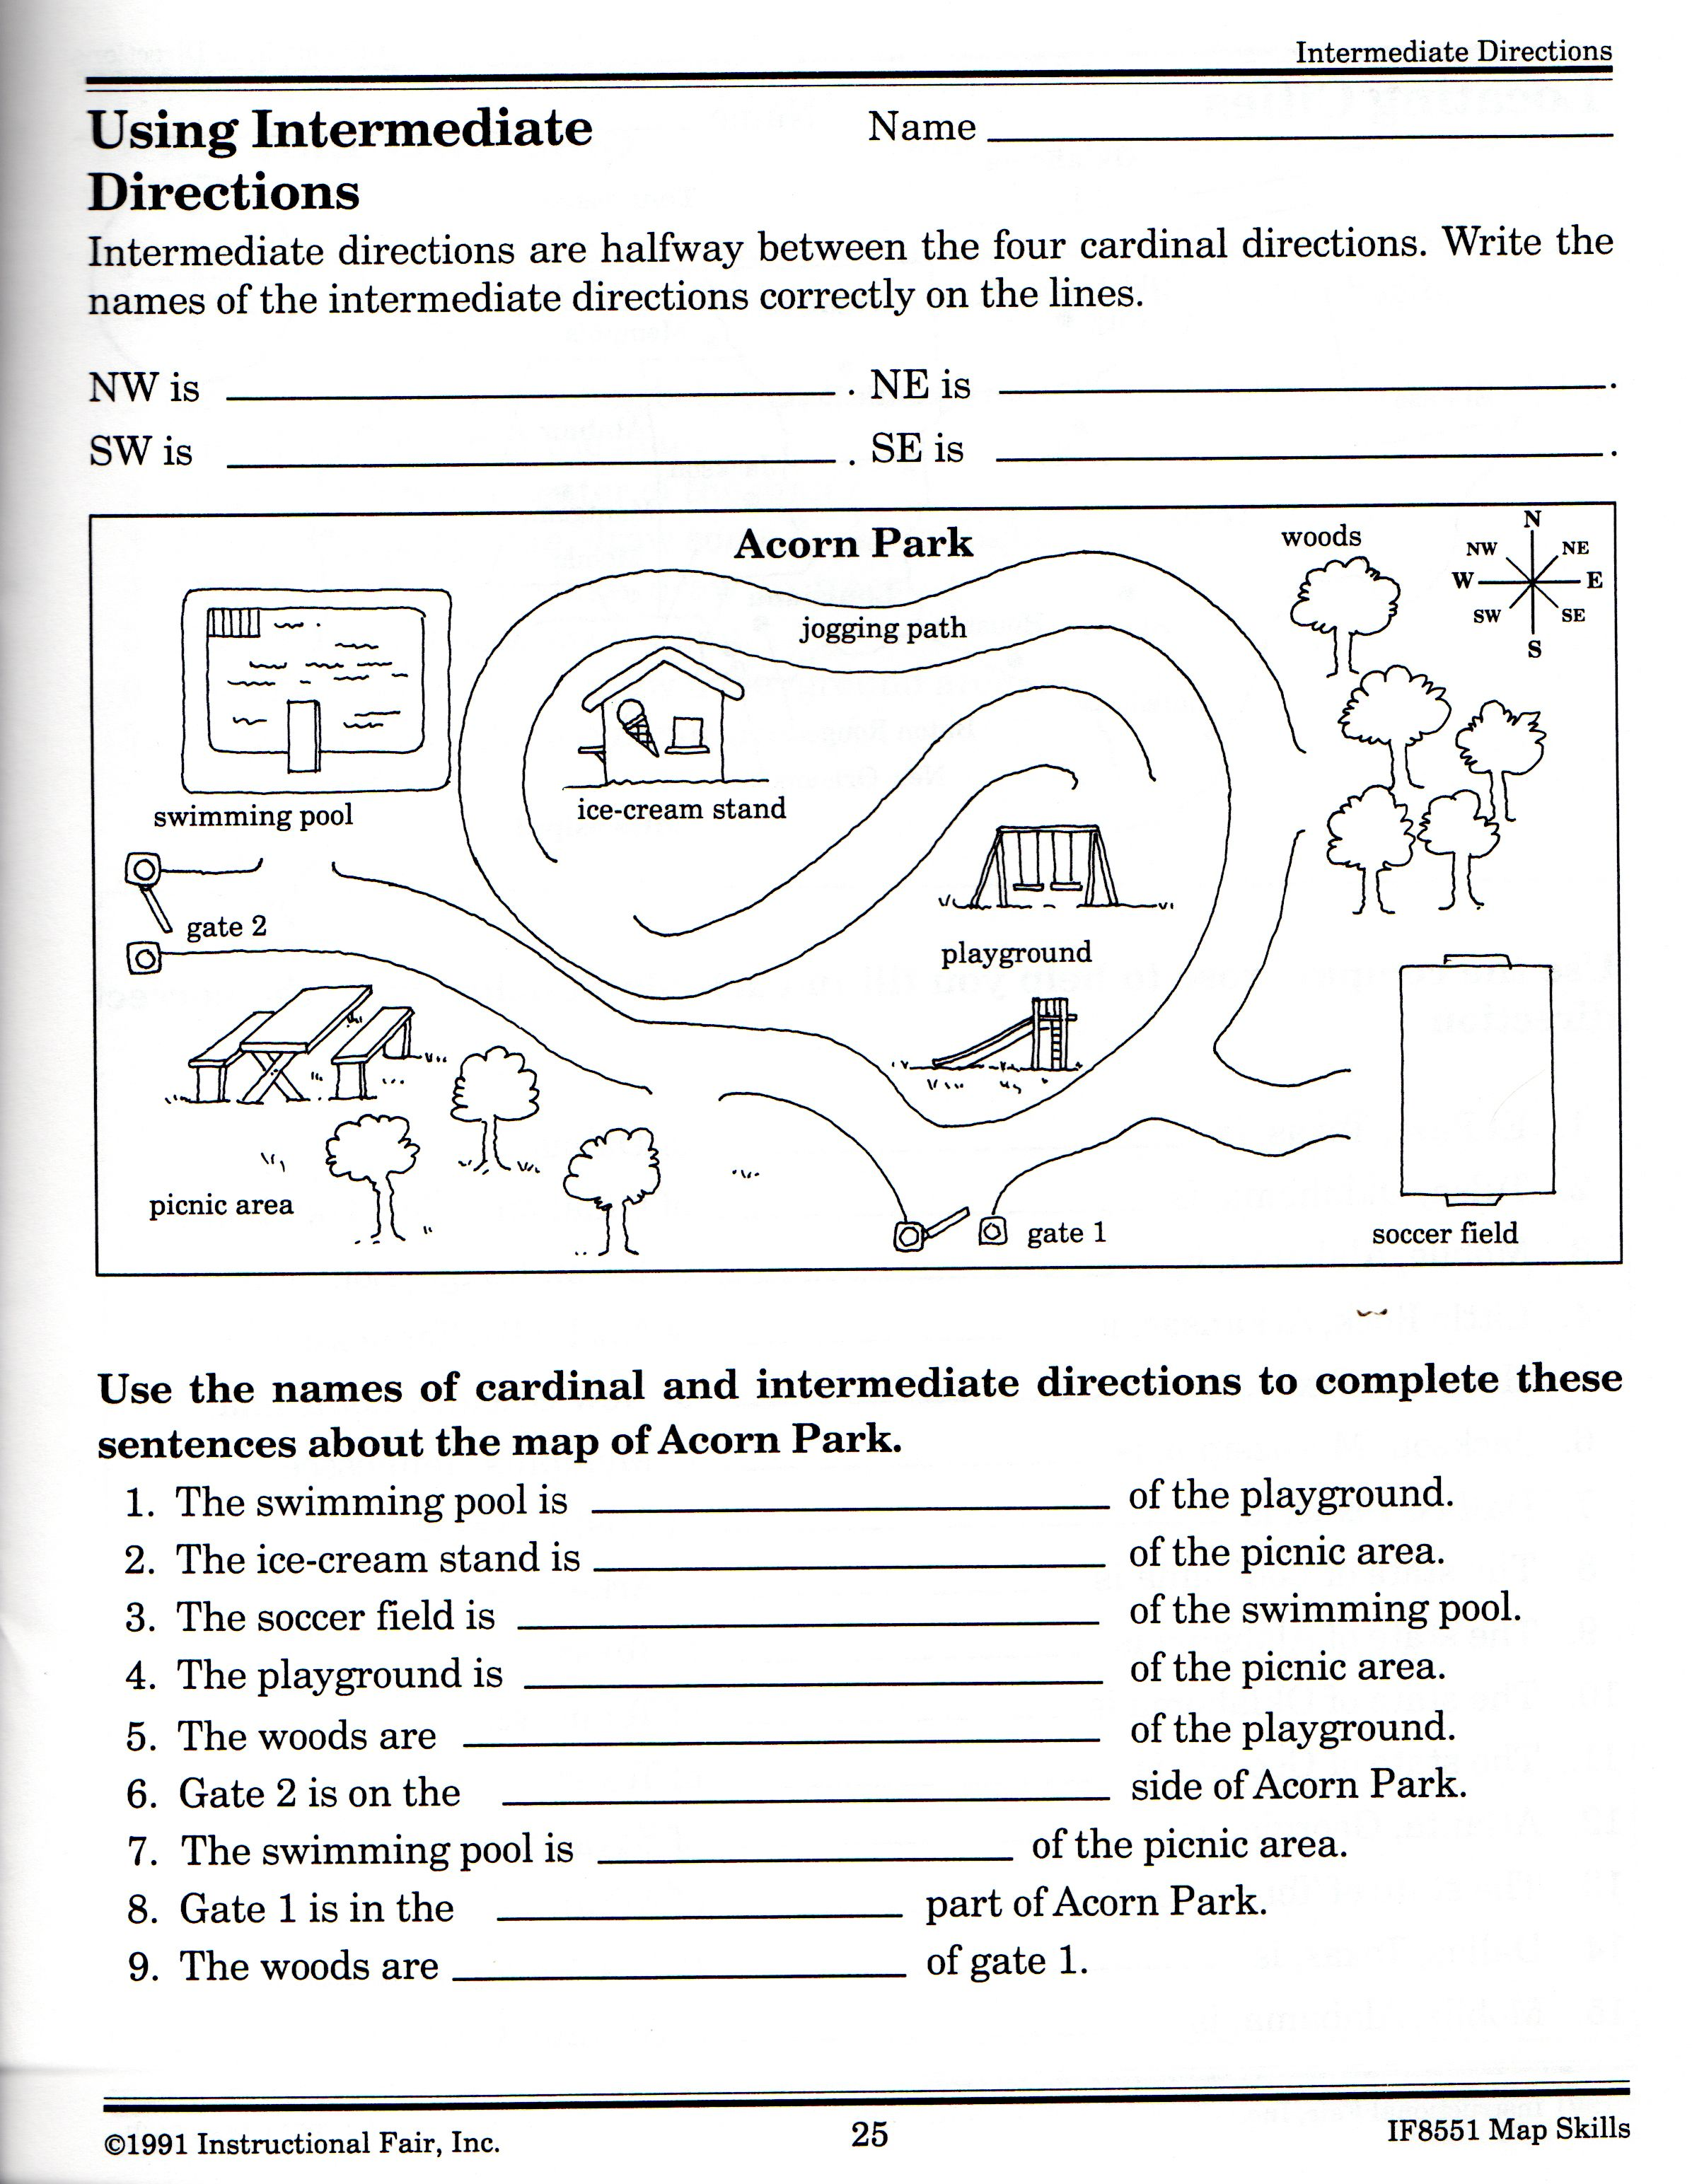 Worksheets Following Directions Worksheets For Middle School intermediate directions worksheet graphic design logos worksheet